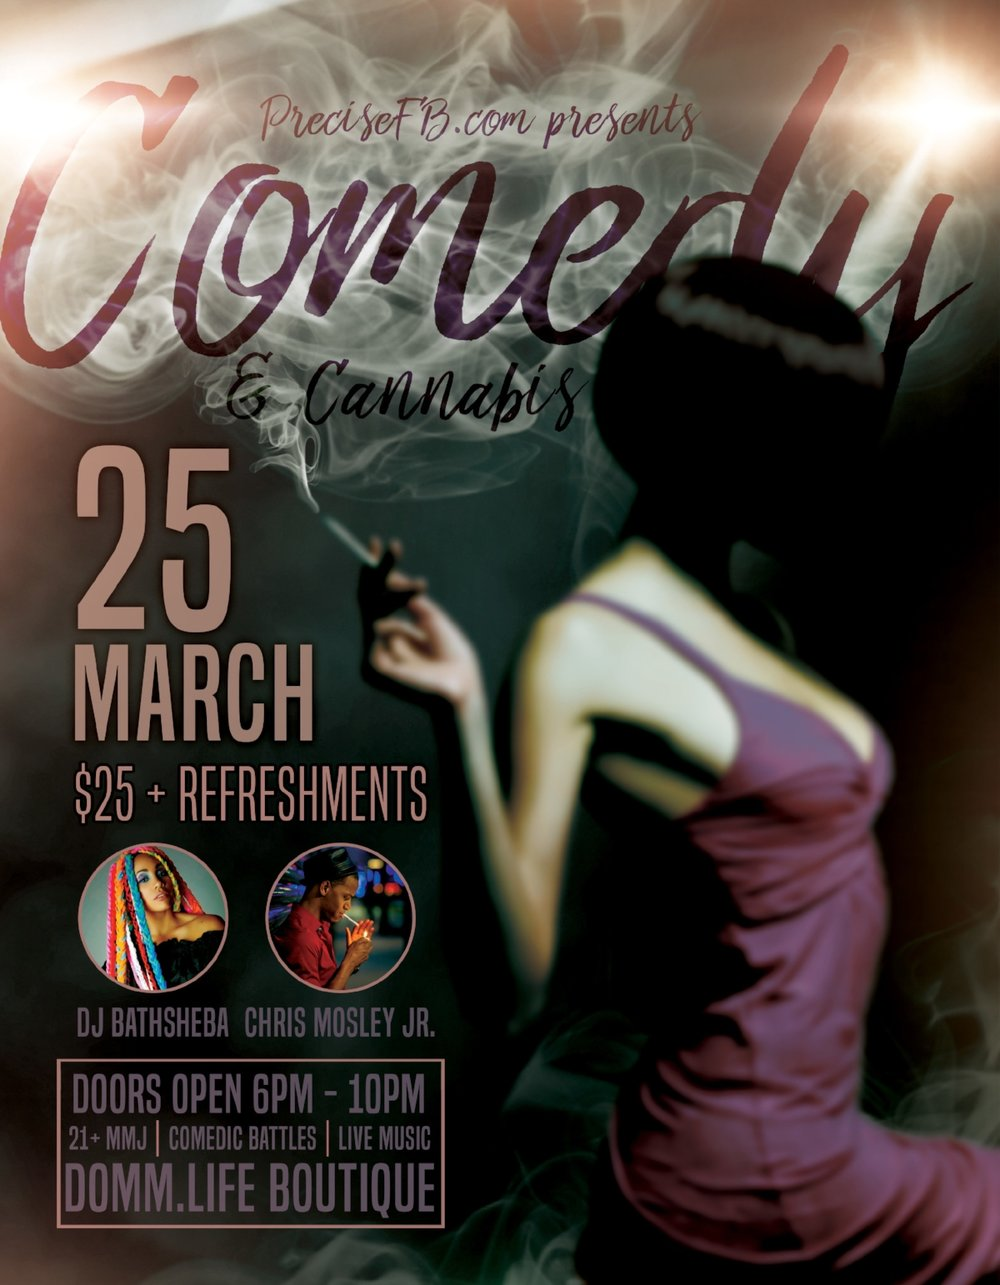 Comedy & Cannabis starts March 25th at DOMM.Life